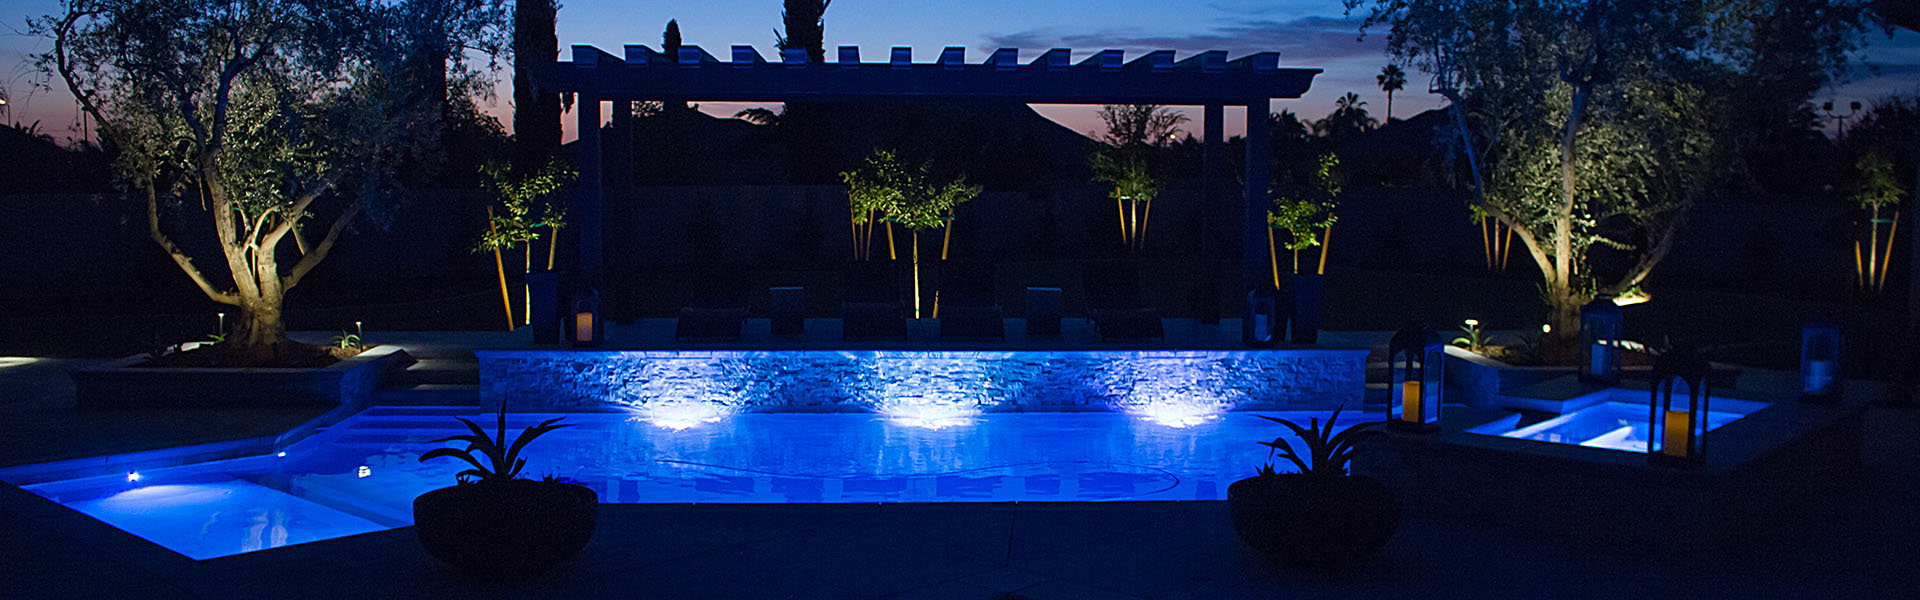 Swimming pool at night with blue underwater lights.